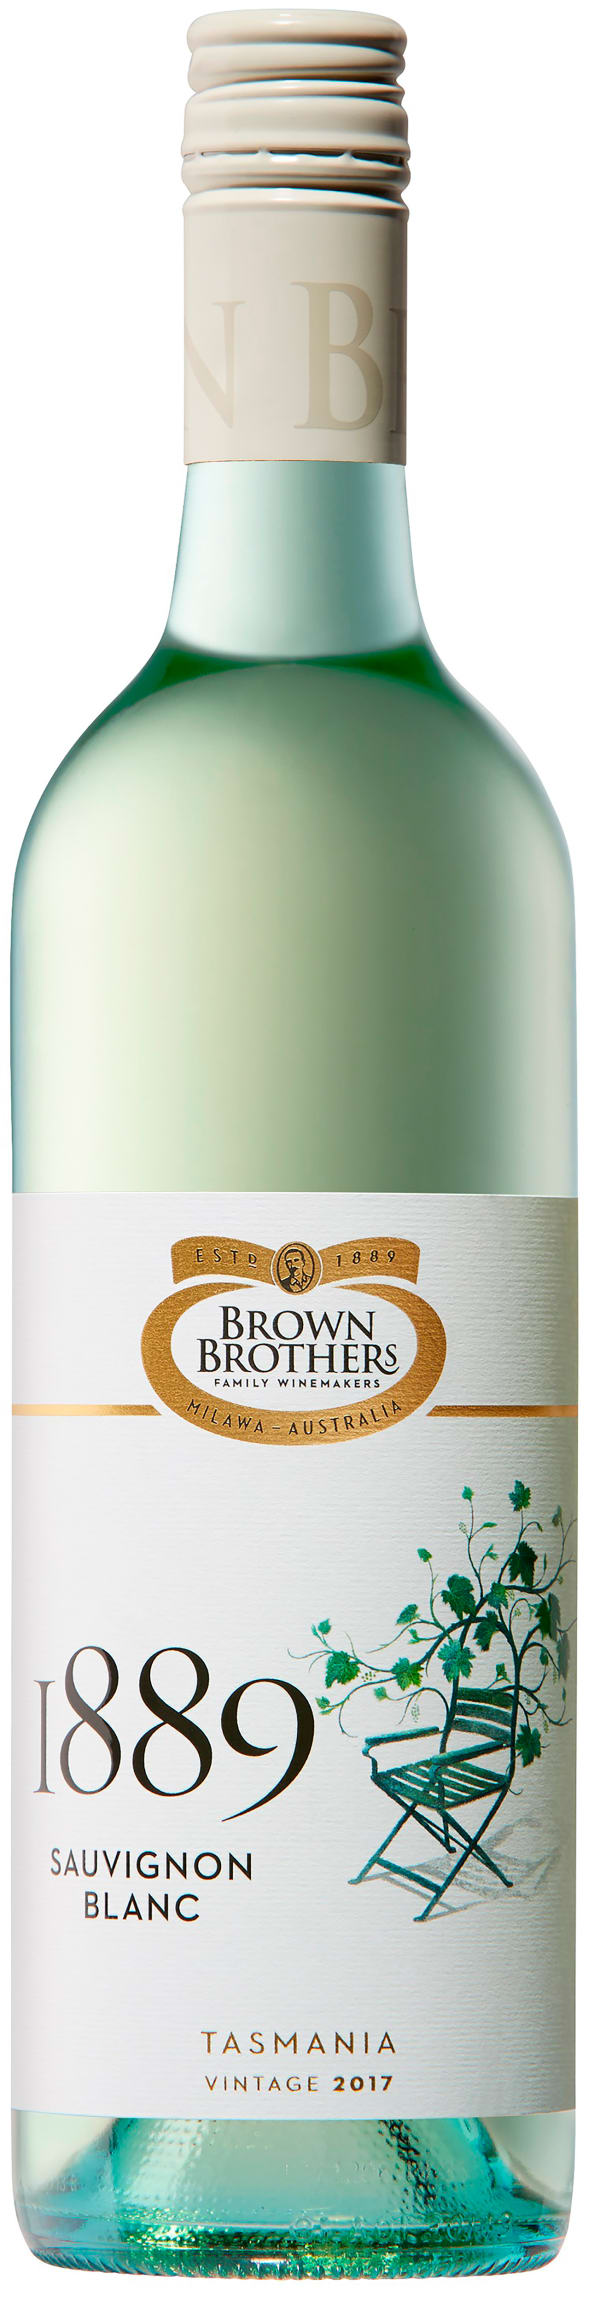 Brown Brothers 1889 Sauvignon Blanc 2017